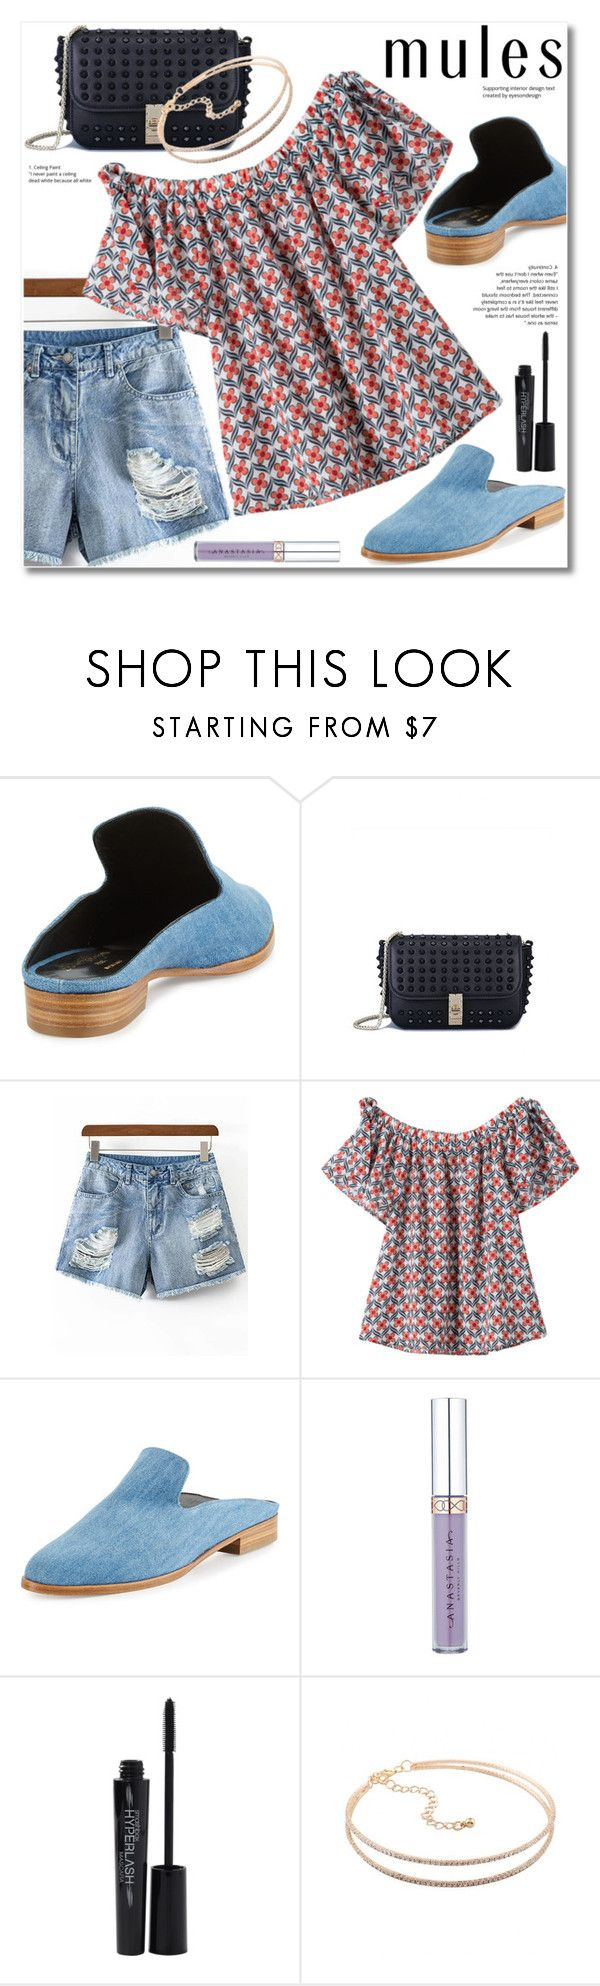 """Slip 'Em On: Mules"" by svijetlana ❤ liked on Polyvore featuring Robert Clergerie, Smashbox, mules and zaful"